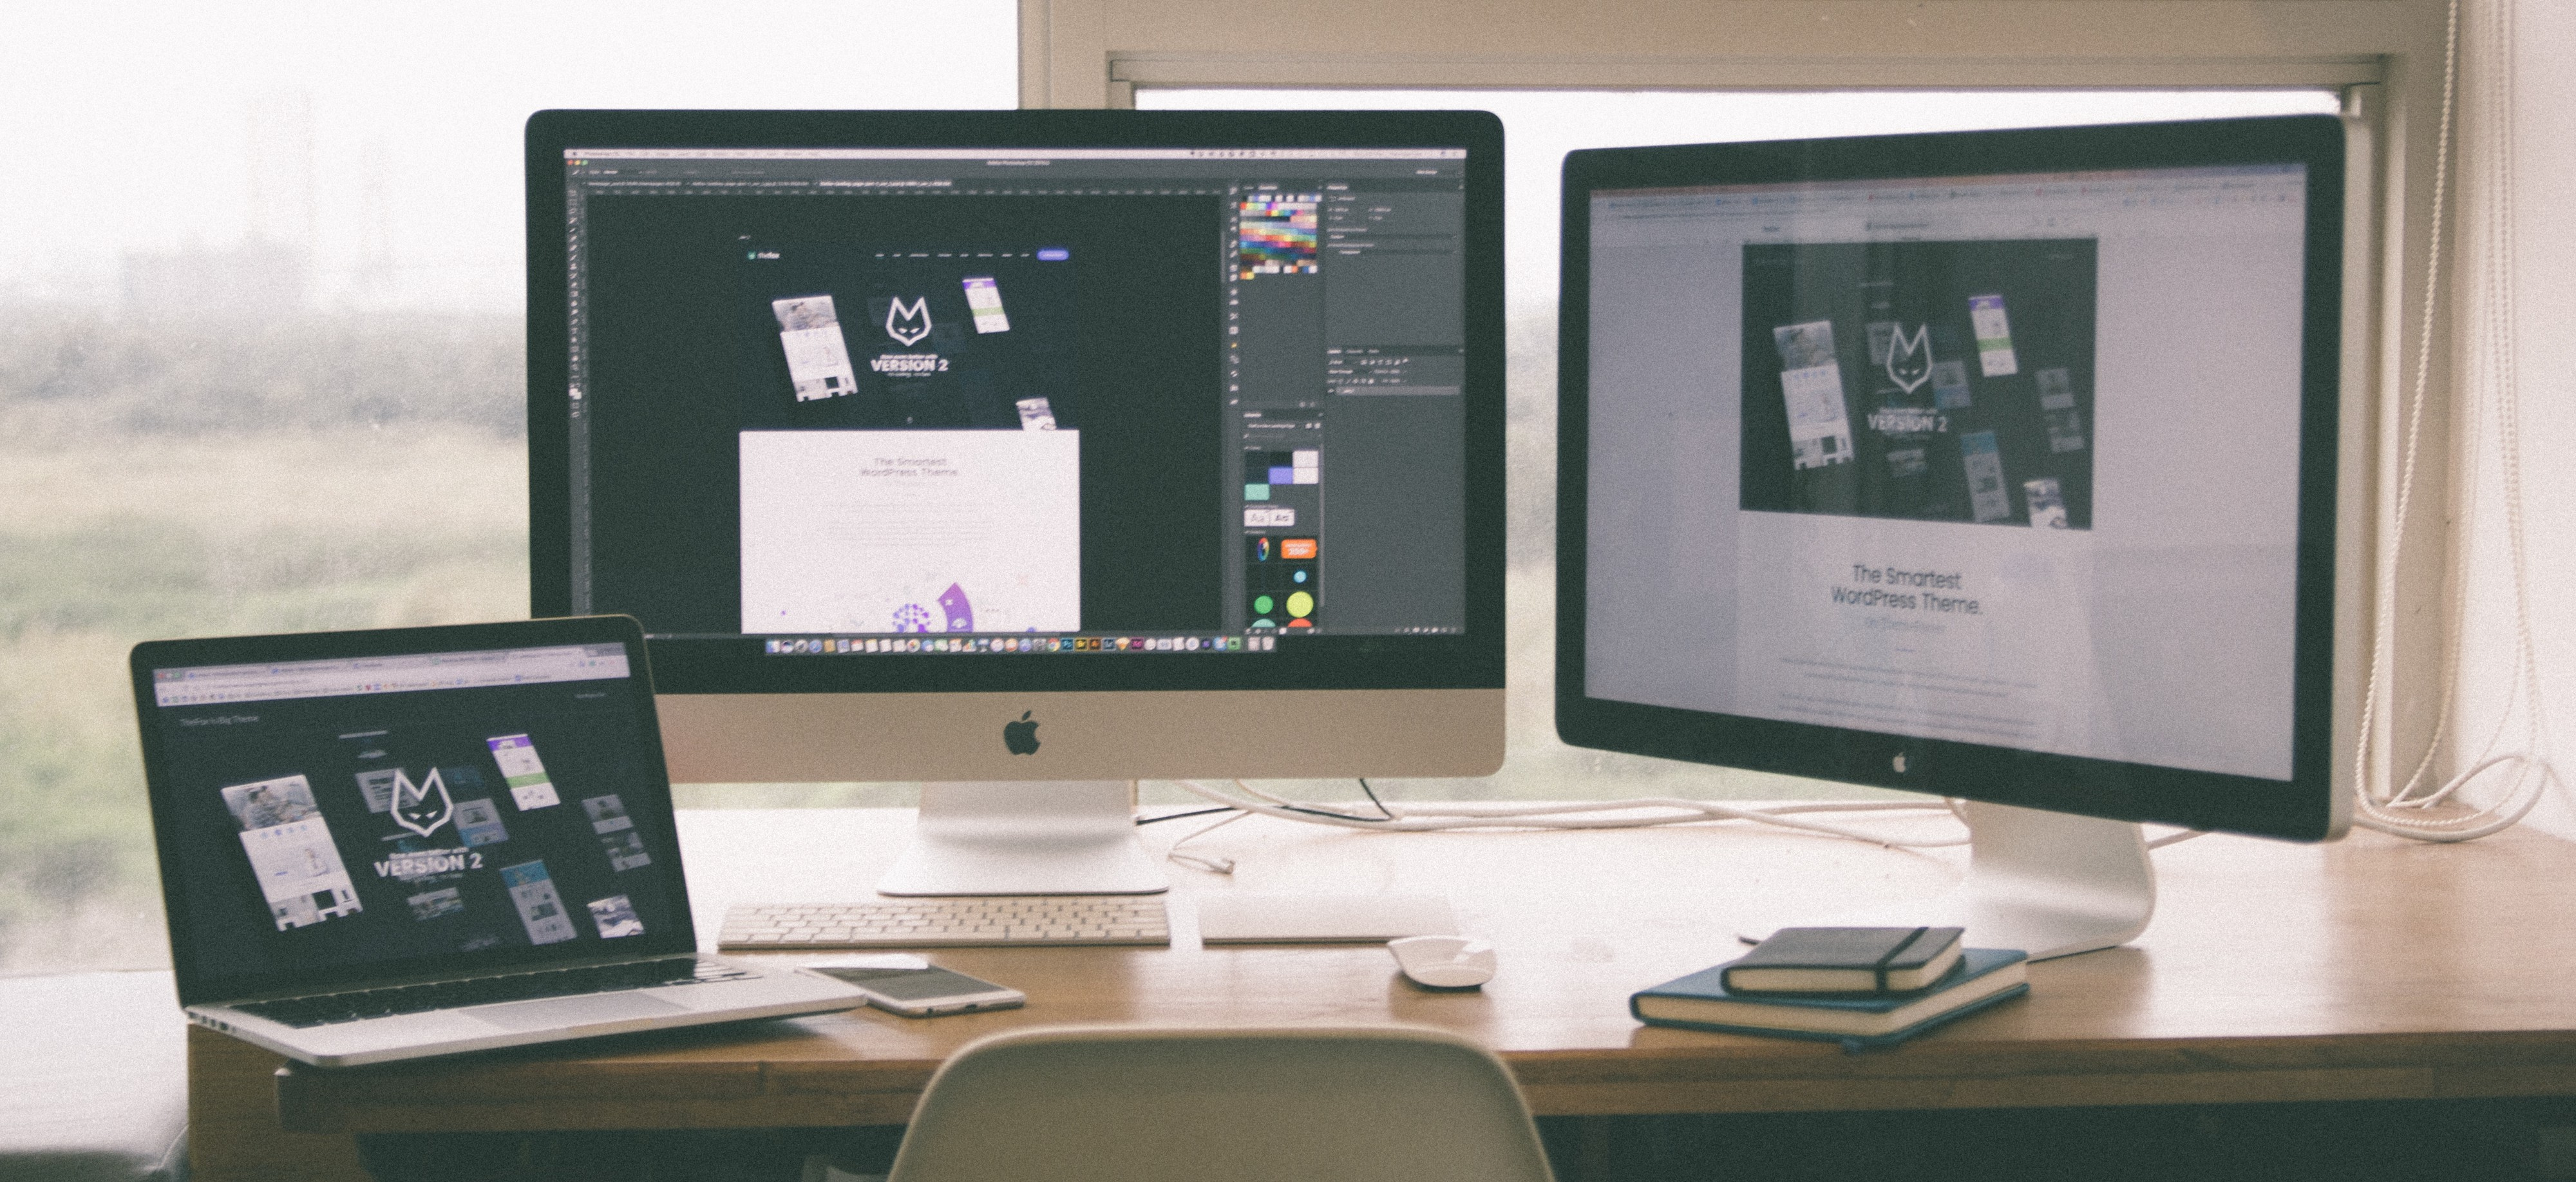 7 Steps To Become A Ui Ux Designer By Nicole Saidy Nicole S Blog